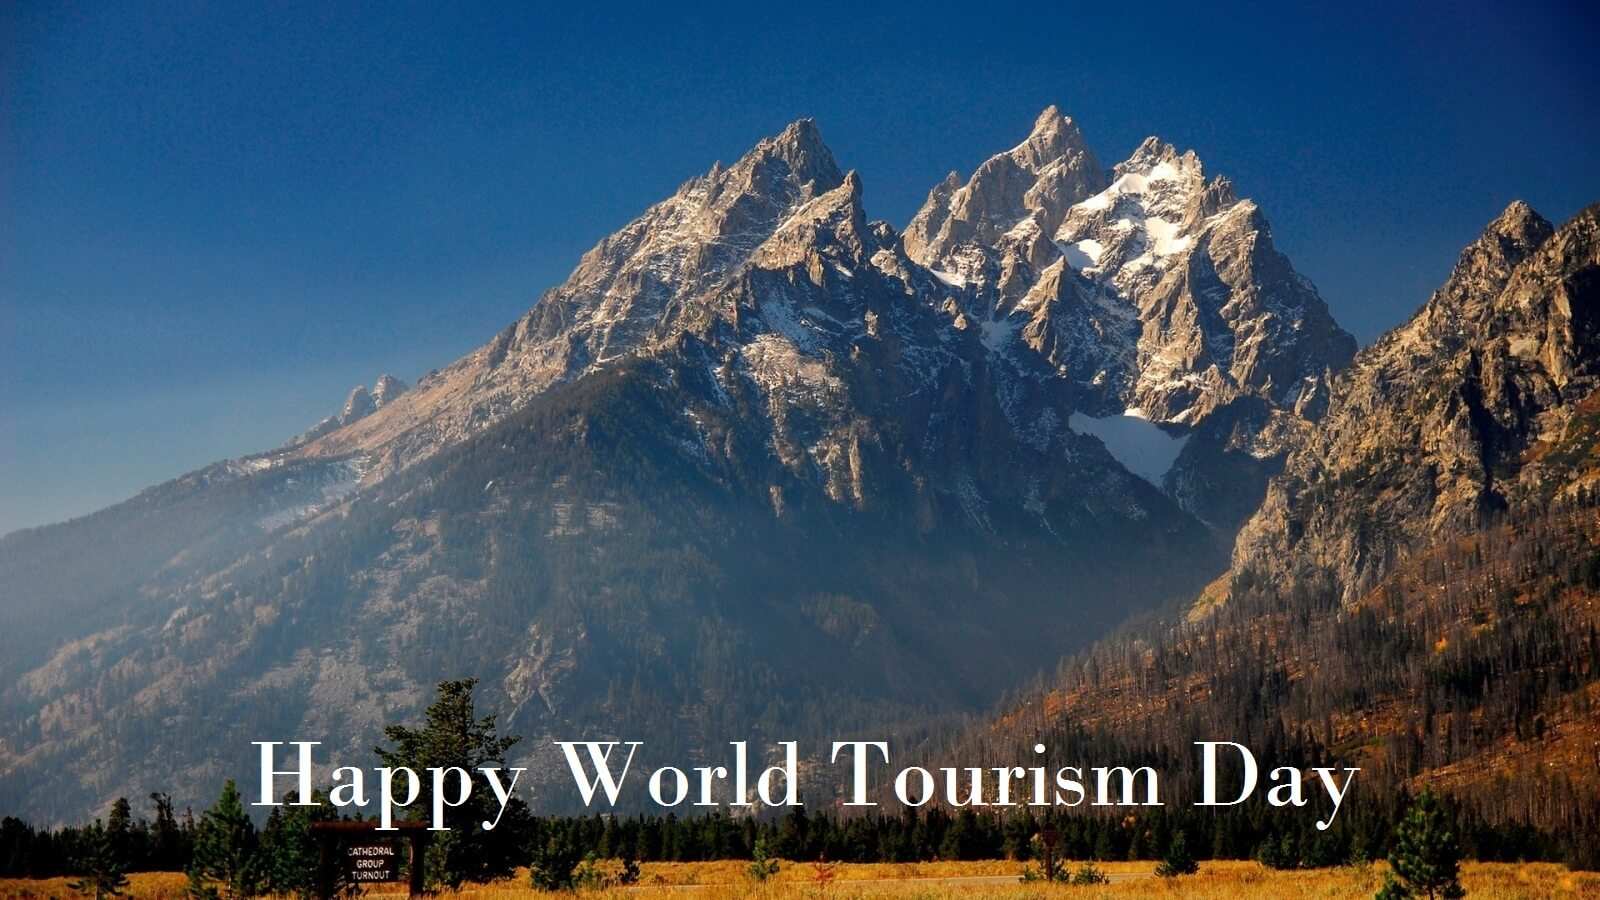 world tourism day 27th september mountains